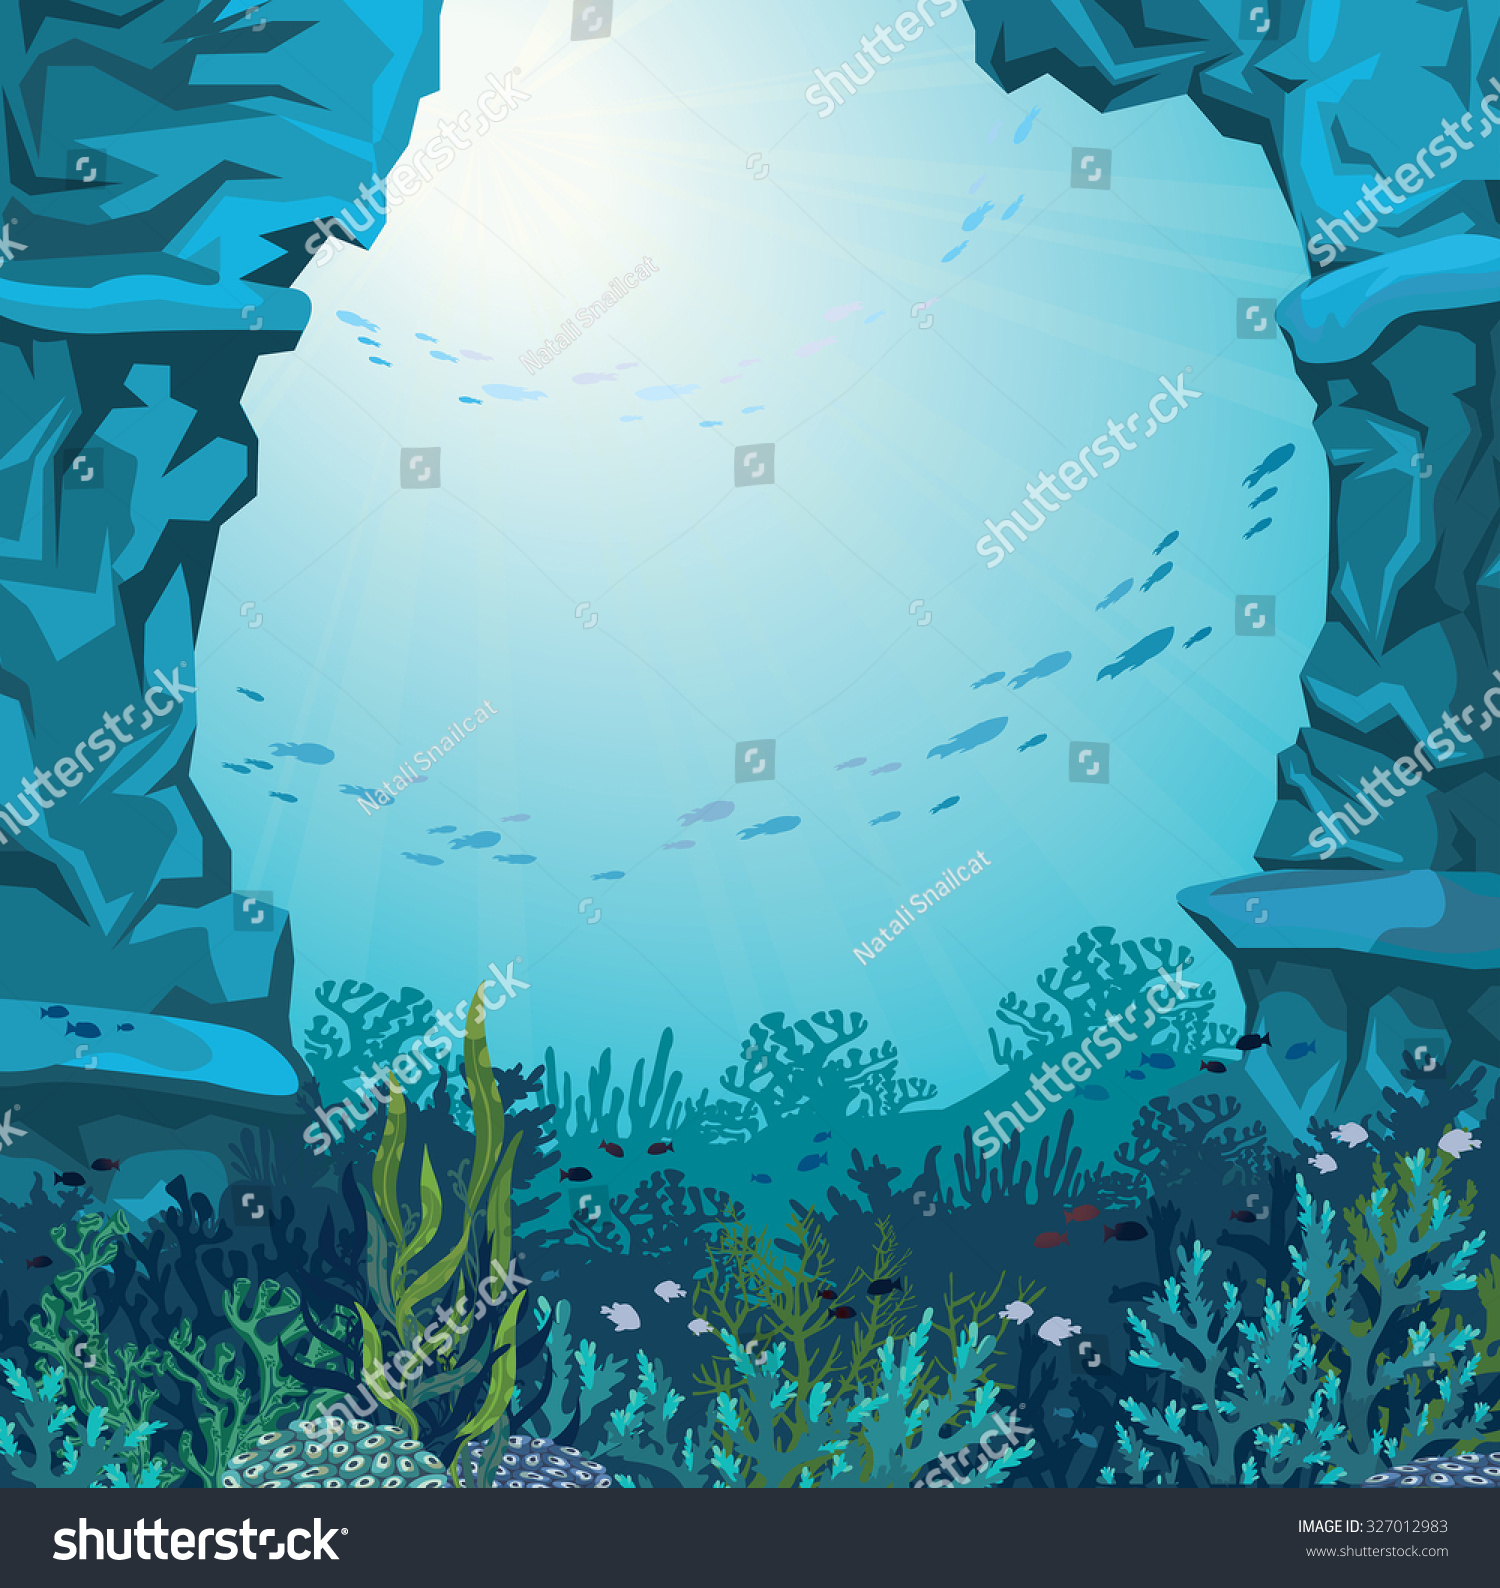 Coral Reef Background: Underwater Cave Coral Reef Silhouette Fish Stock Vector